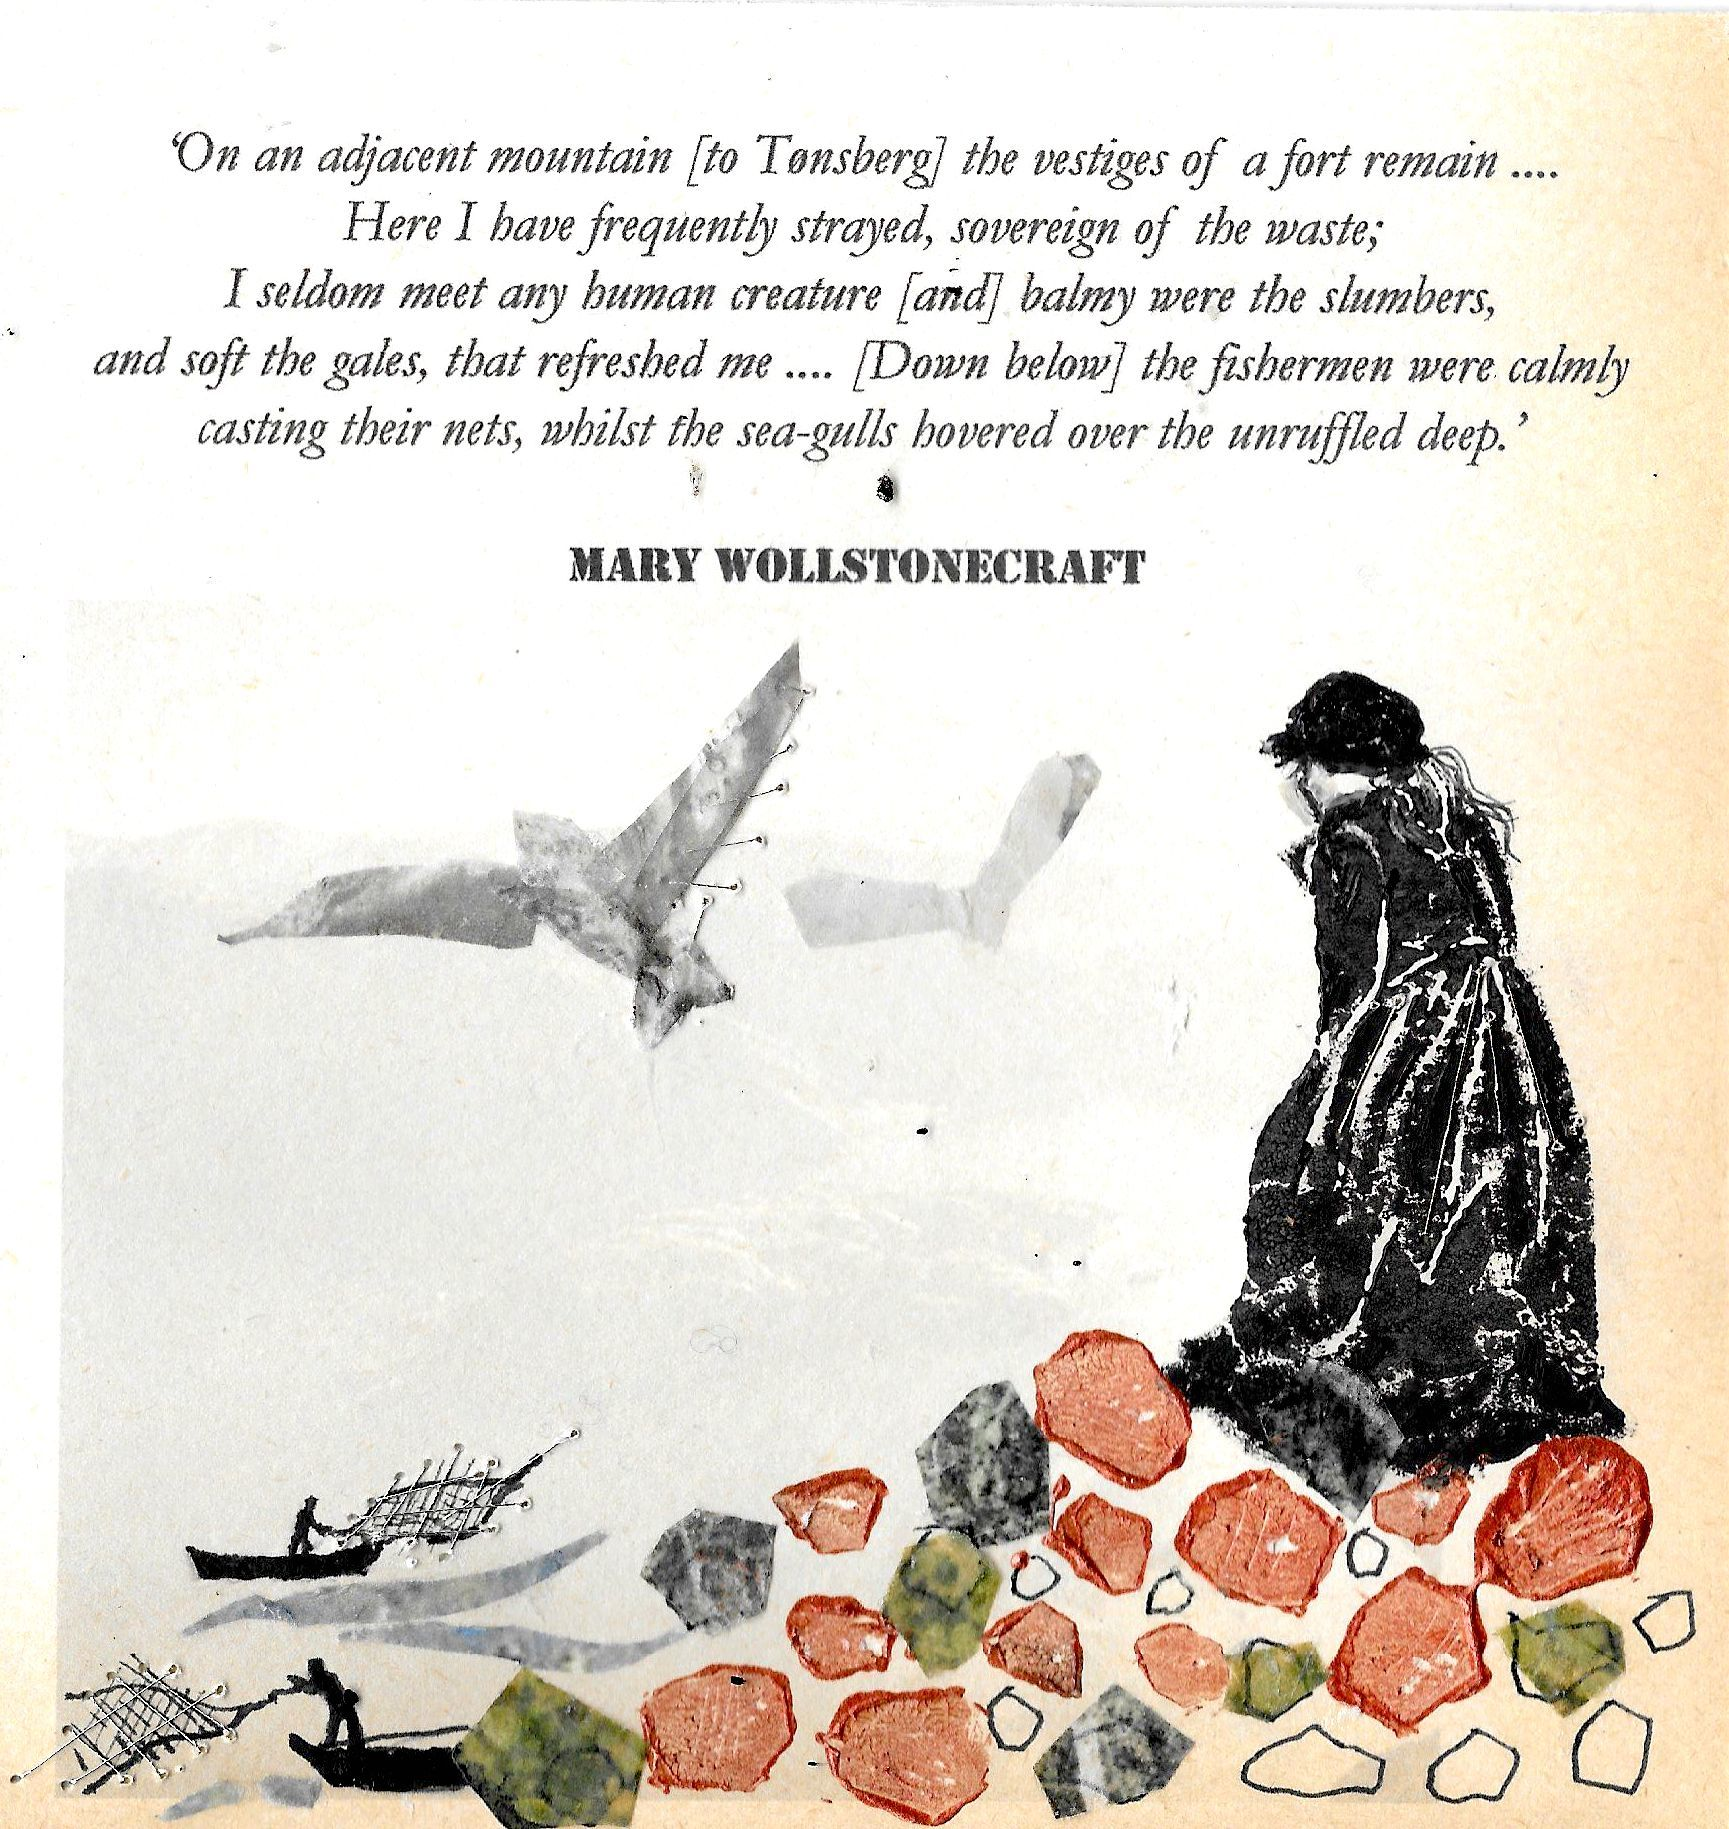 """Illustration by Louisa Albani. Female figure on some rocks, overlooking boats in the sea and a seagull in the air. Quote: """"On an adjacent mountain [to Tonsberg] the vestiges of a fort remain .... Here I Have frequently strayed, sovereign of the waste; I seldom meet any human creature [and] balmy were the slumbers, and soft the gales, that refreshed me .... [Down below] the fishermen were calmly casting their nets, whilst the sea-gulls hovered over the unruffled deep."""" - Mary Wollstonecraft"""